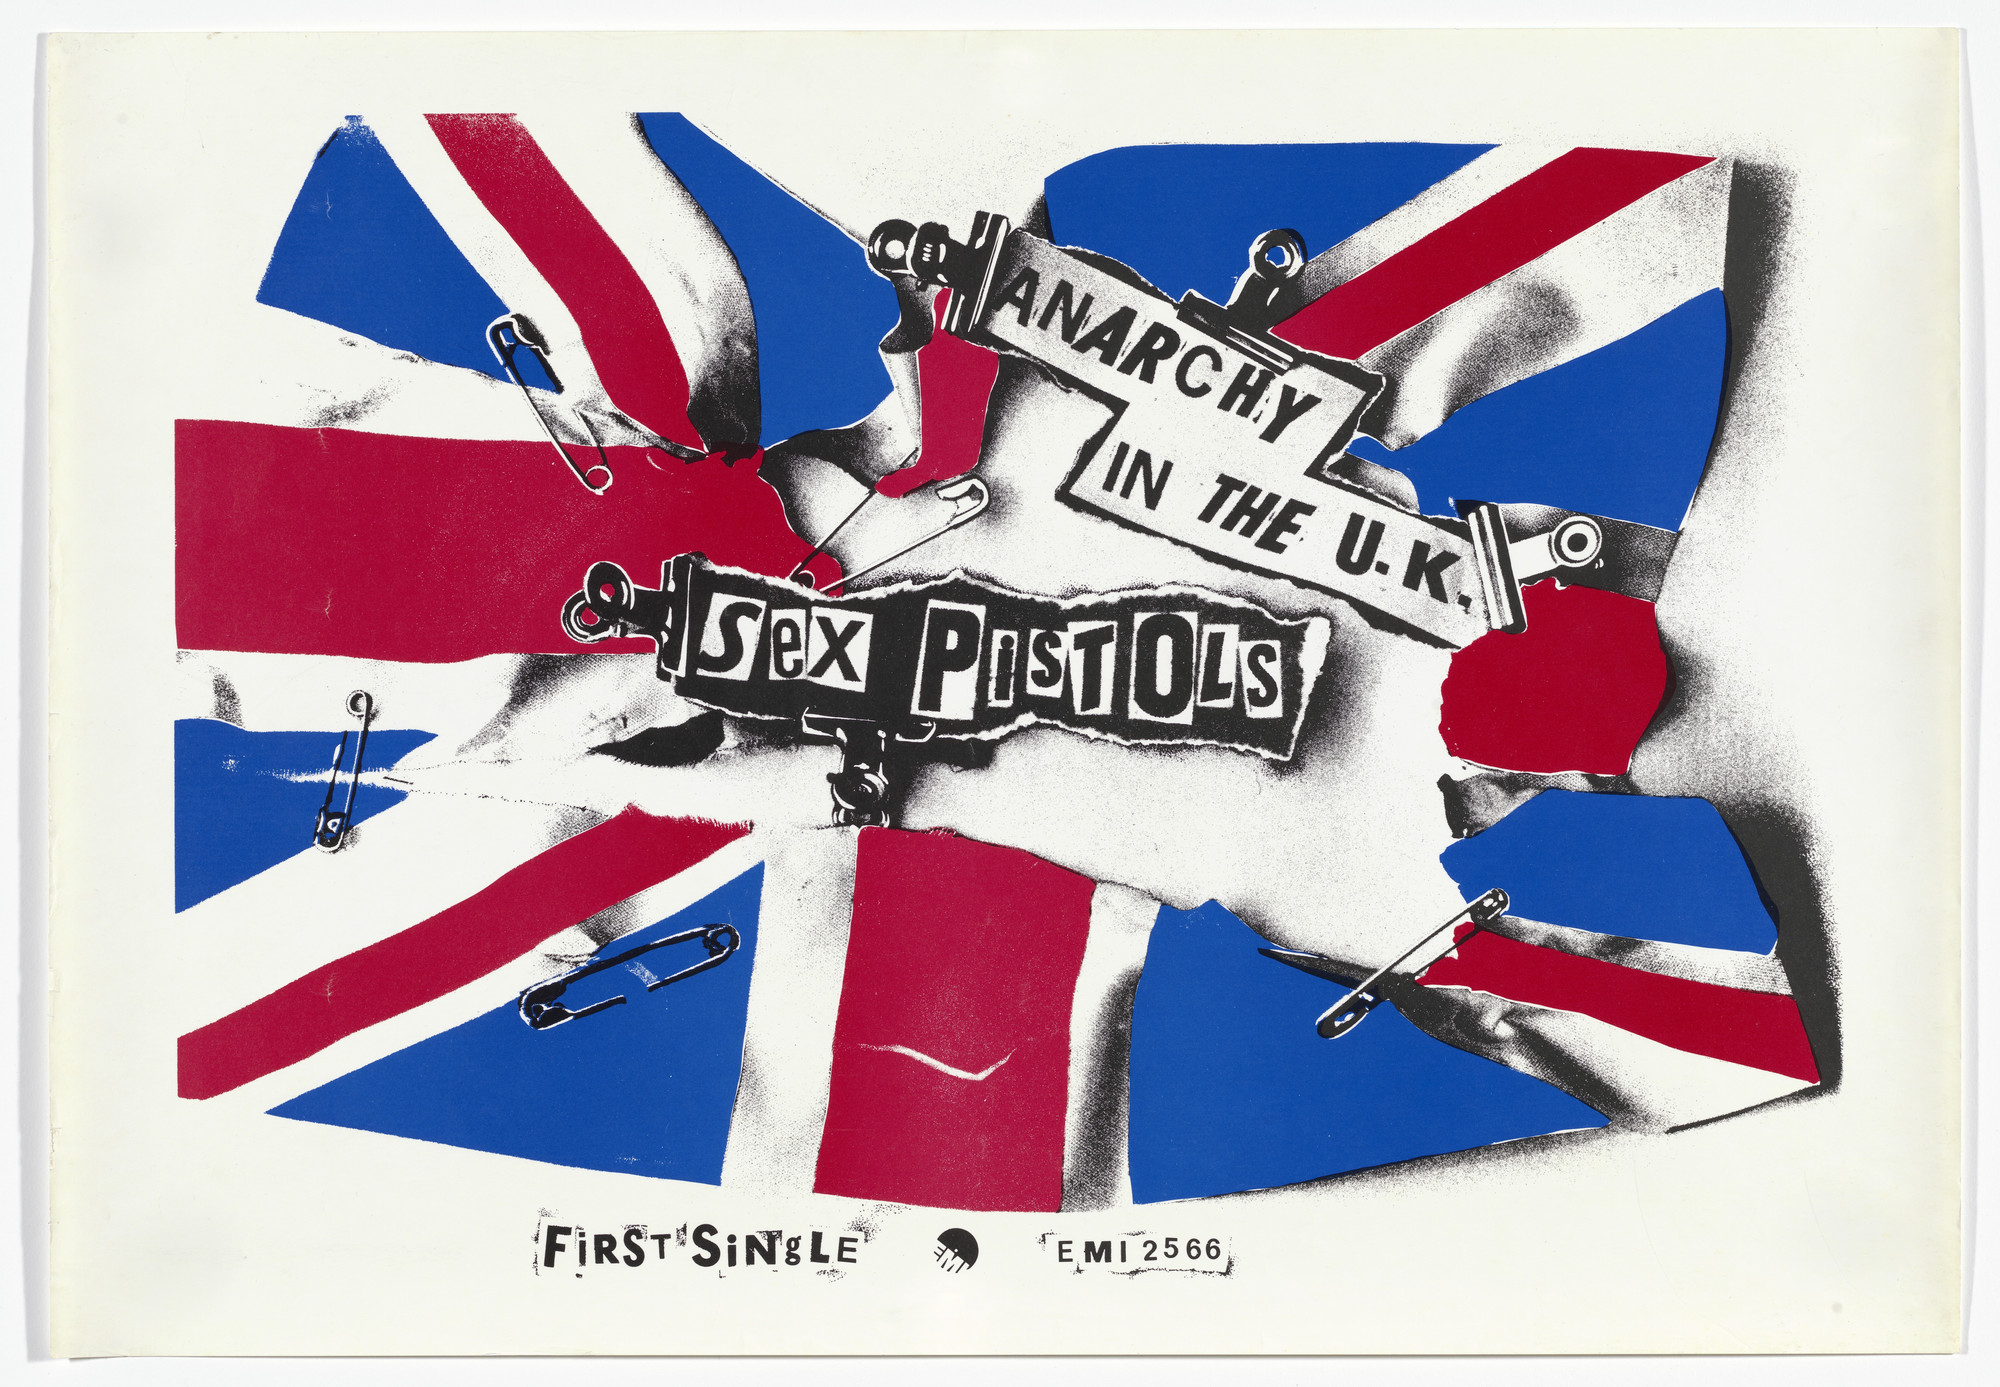 Jamie Reid. Sex Pistols, Anarchy in the UK. 1976